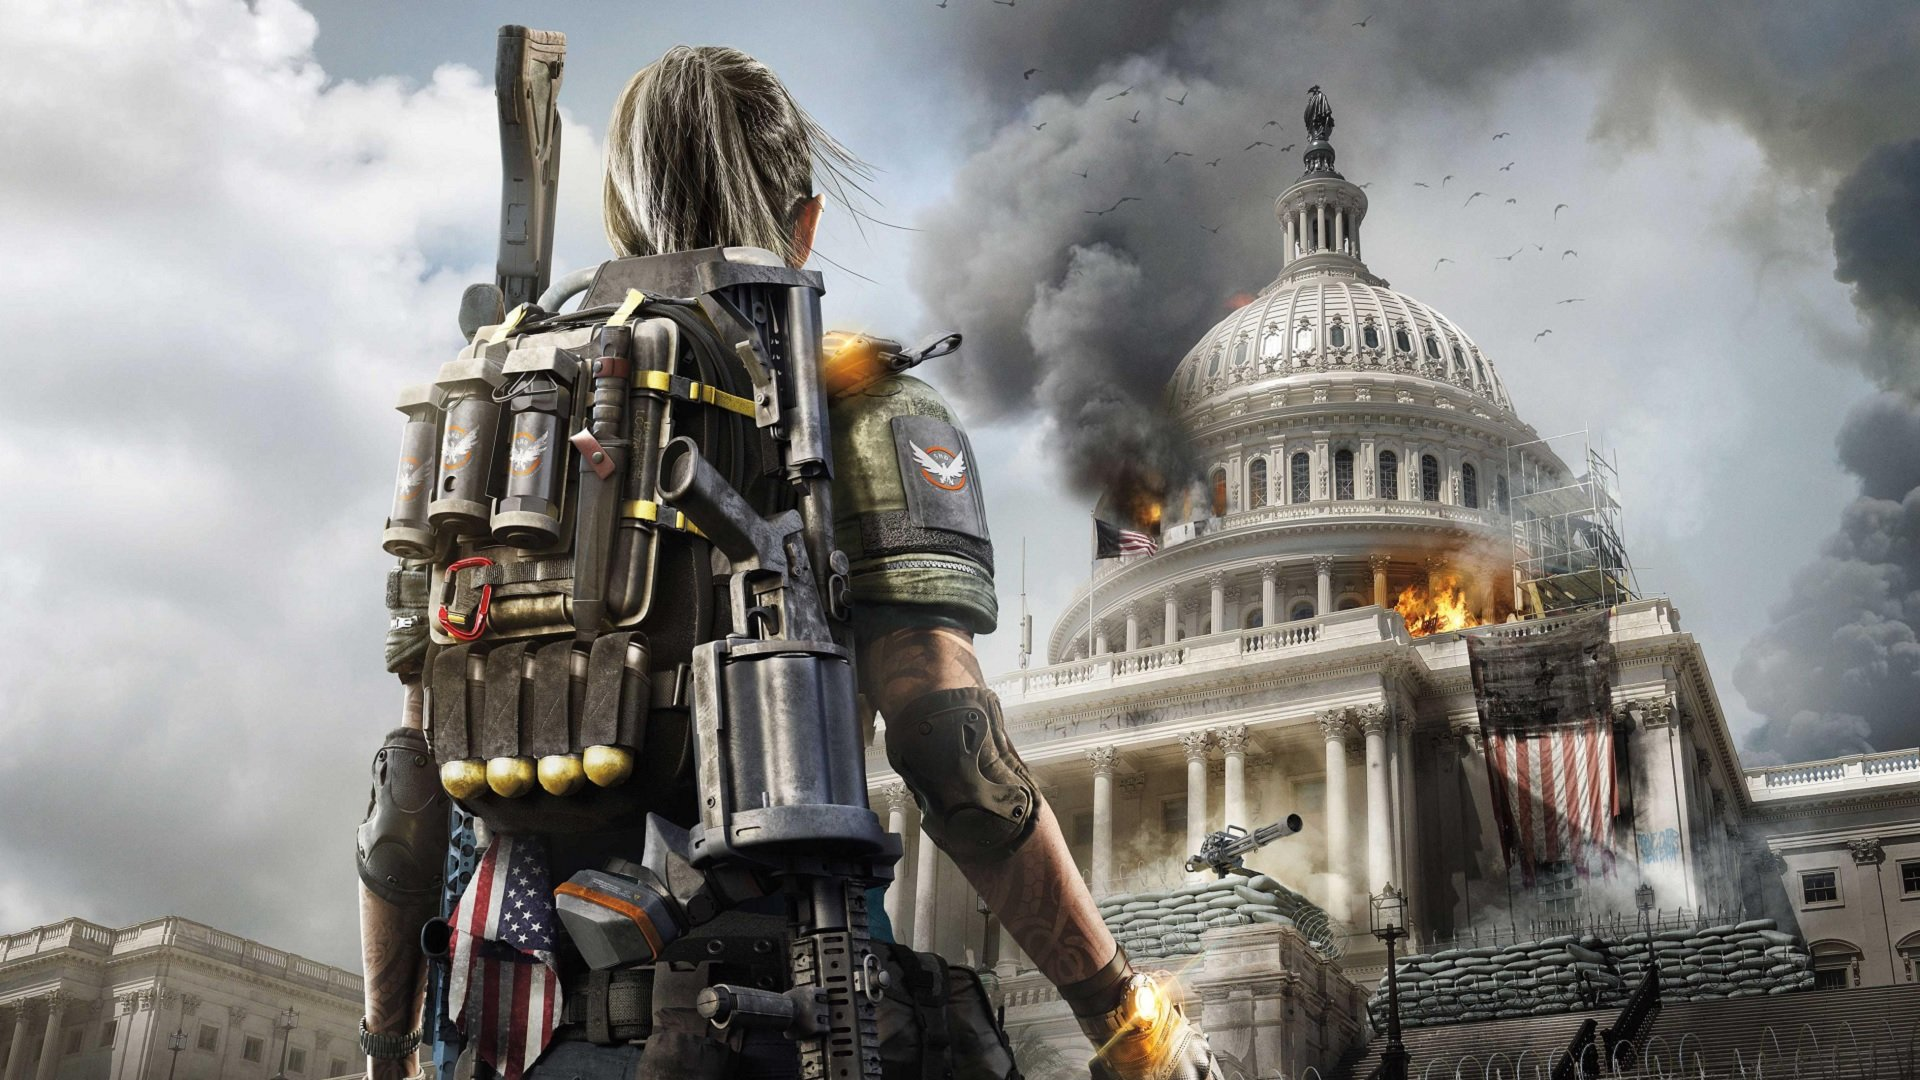 You can skip past cutscenes in Tom Clancy's The Division 2 by pressing and holding Square on PS4, X on Xbox One, or E/F on PC.